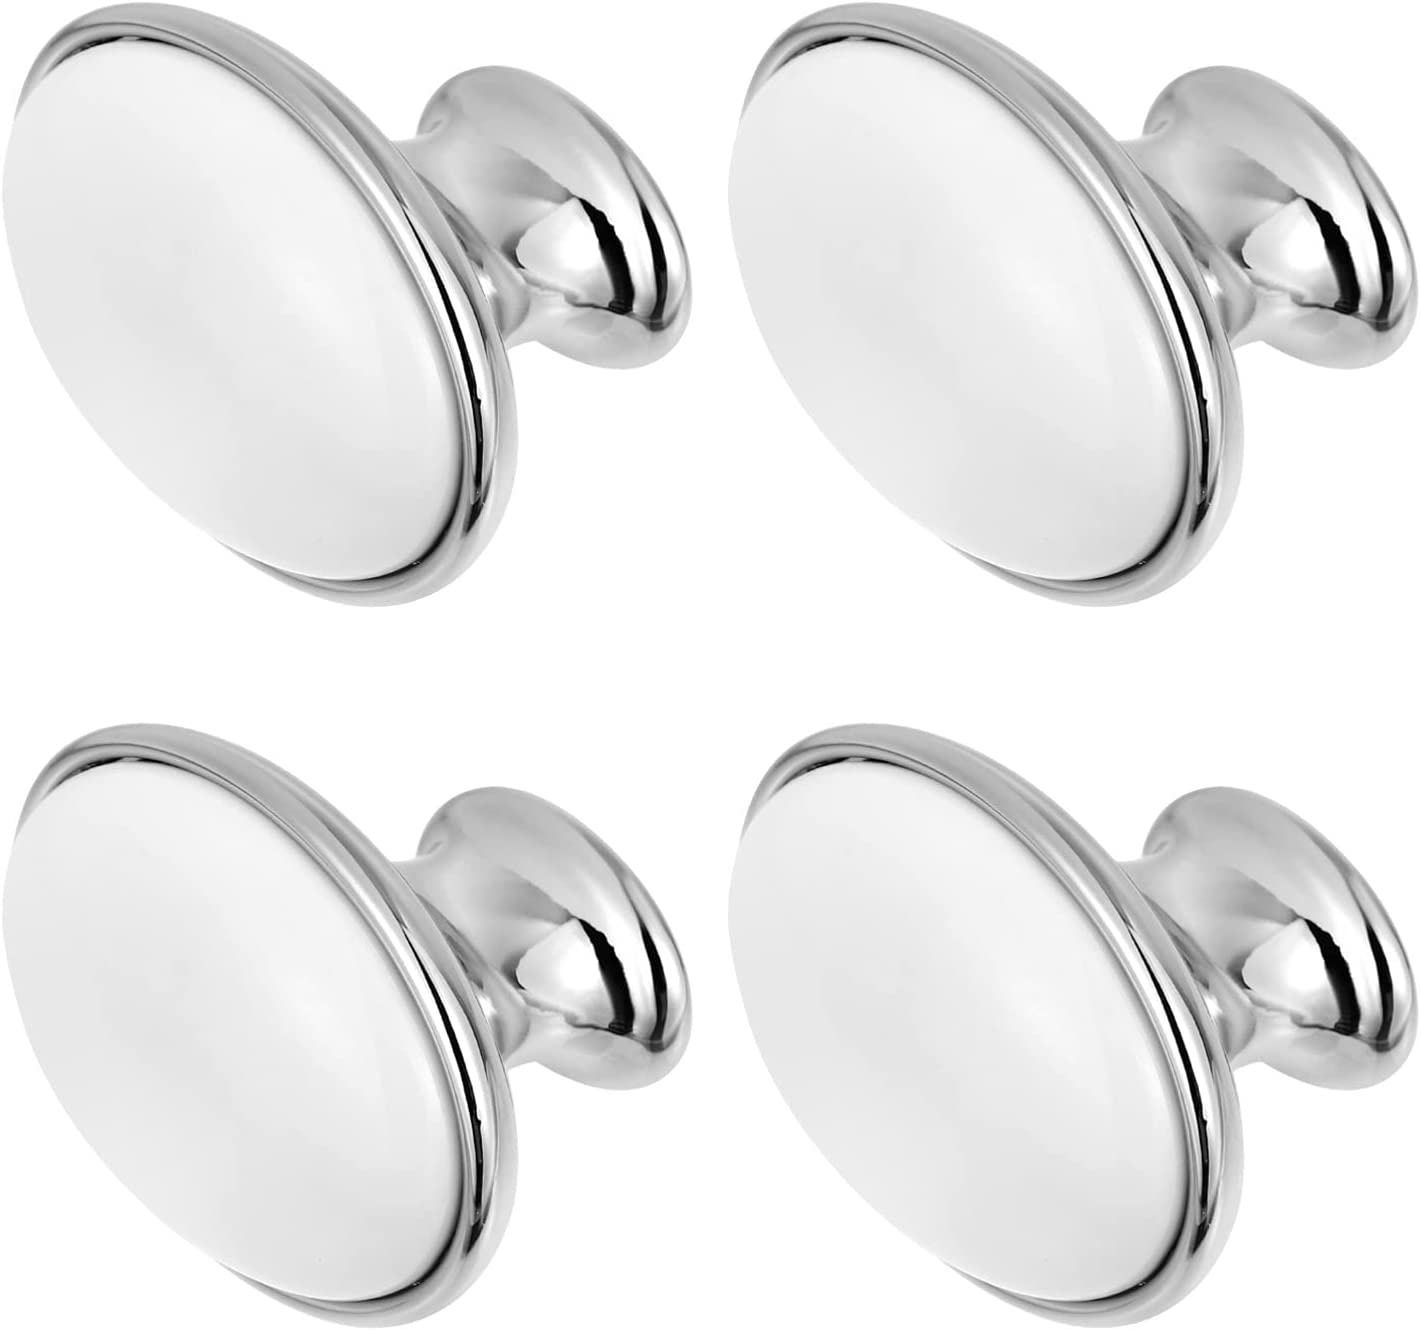 DOITOOL 4pcs Antique Metal Drawer Excellence Door Knob Pull Cupboard Handle Max 68% OFF